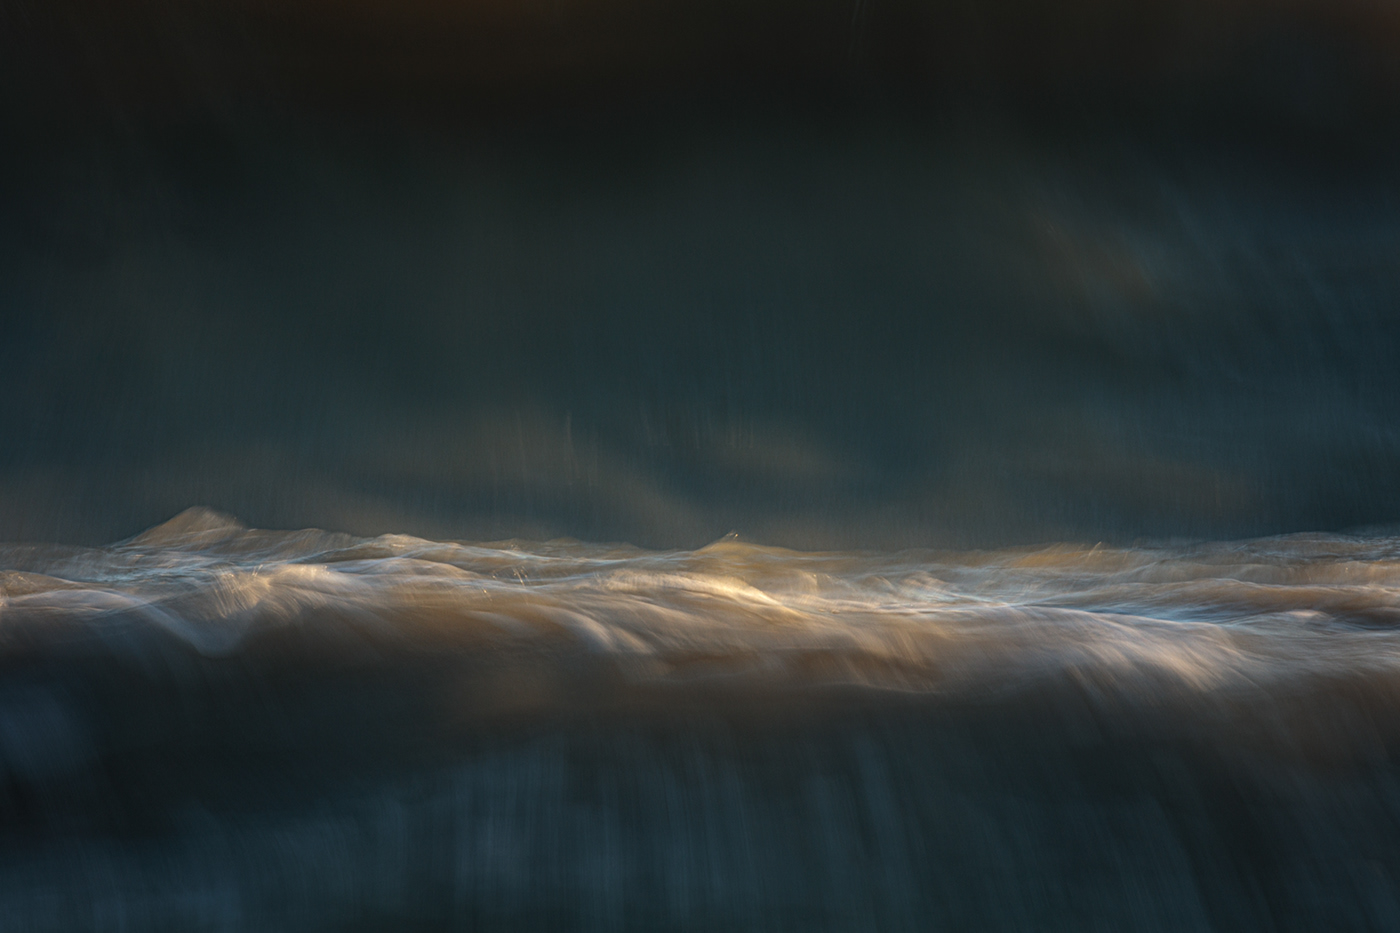 A painterly photograph of the sea